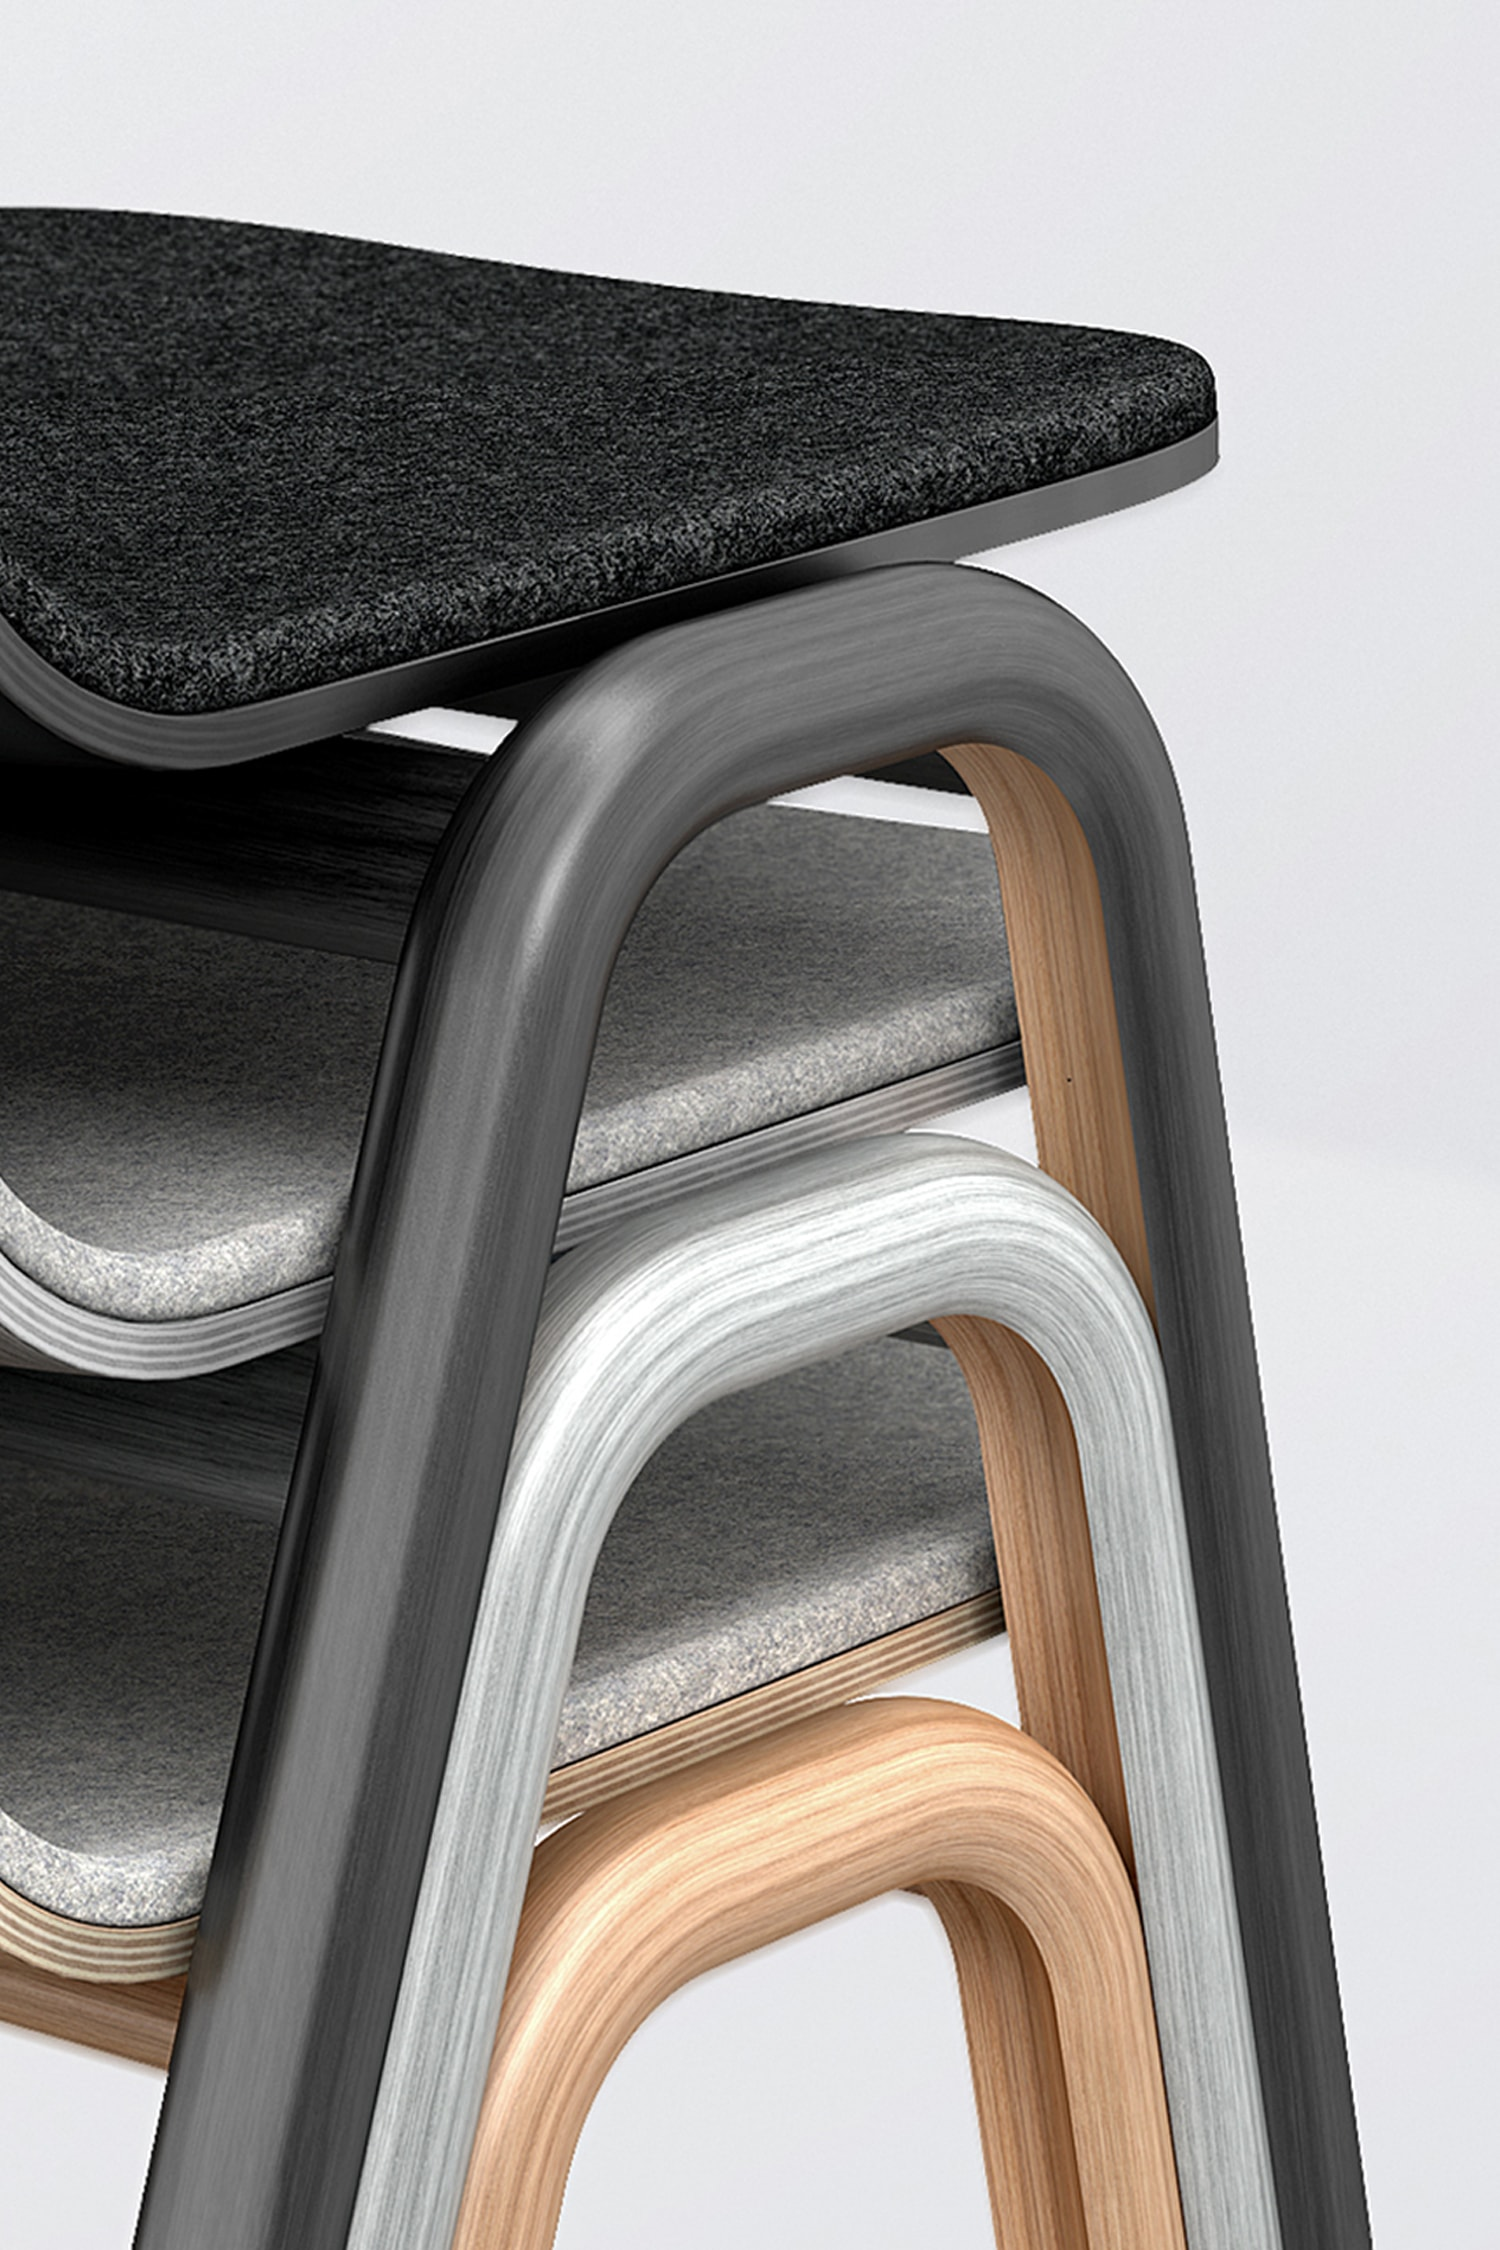 Detail view of Grey, Oak and Black Chairs. The chairs are made using steam bent wood. The image is cropped and draws the attention to the legs and how they are designed to be easily stacked.